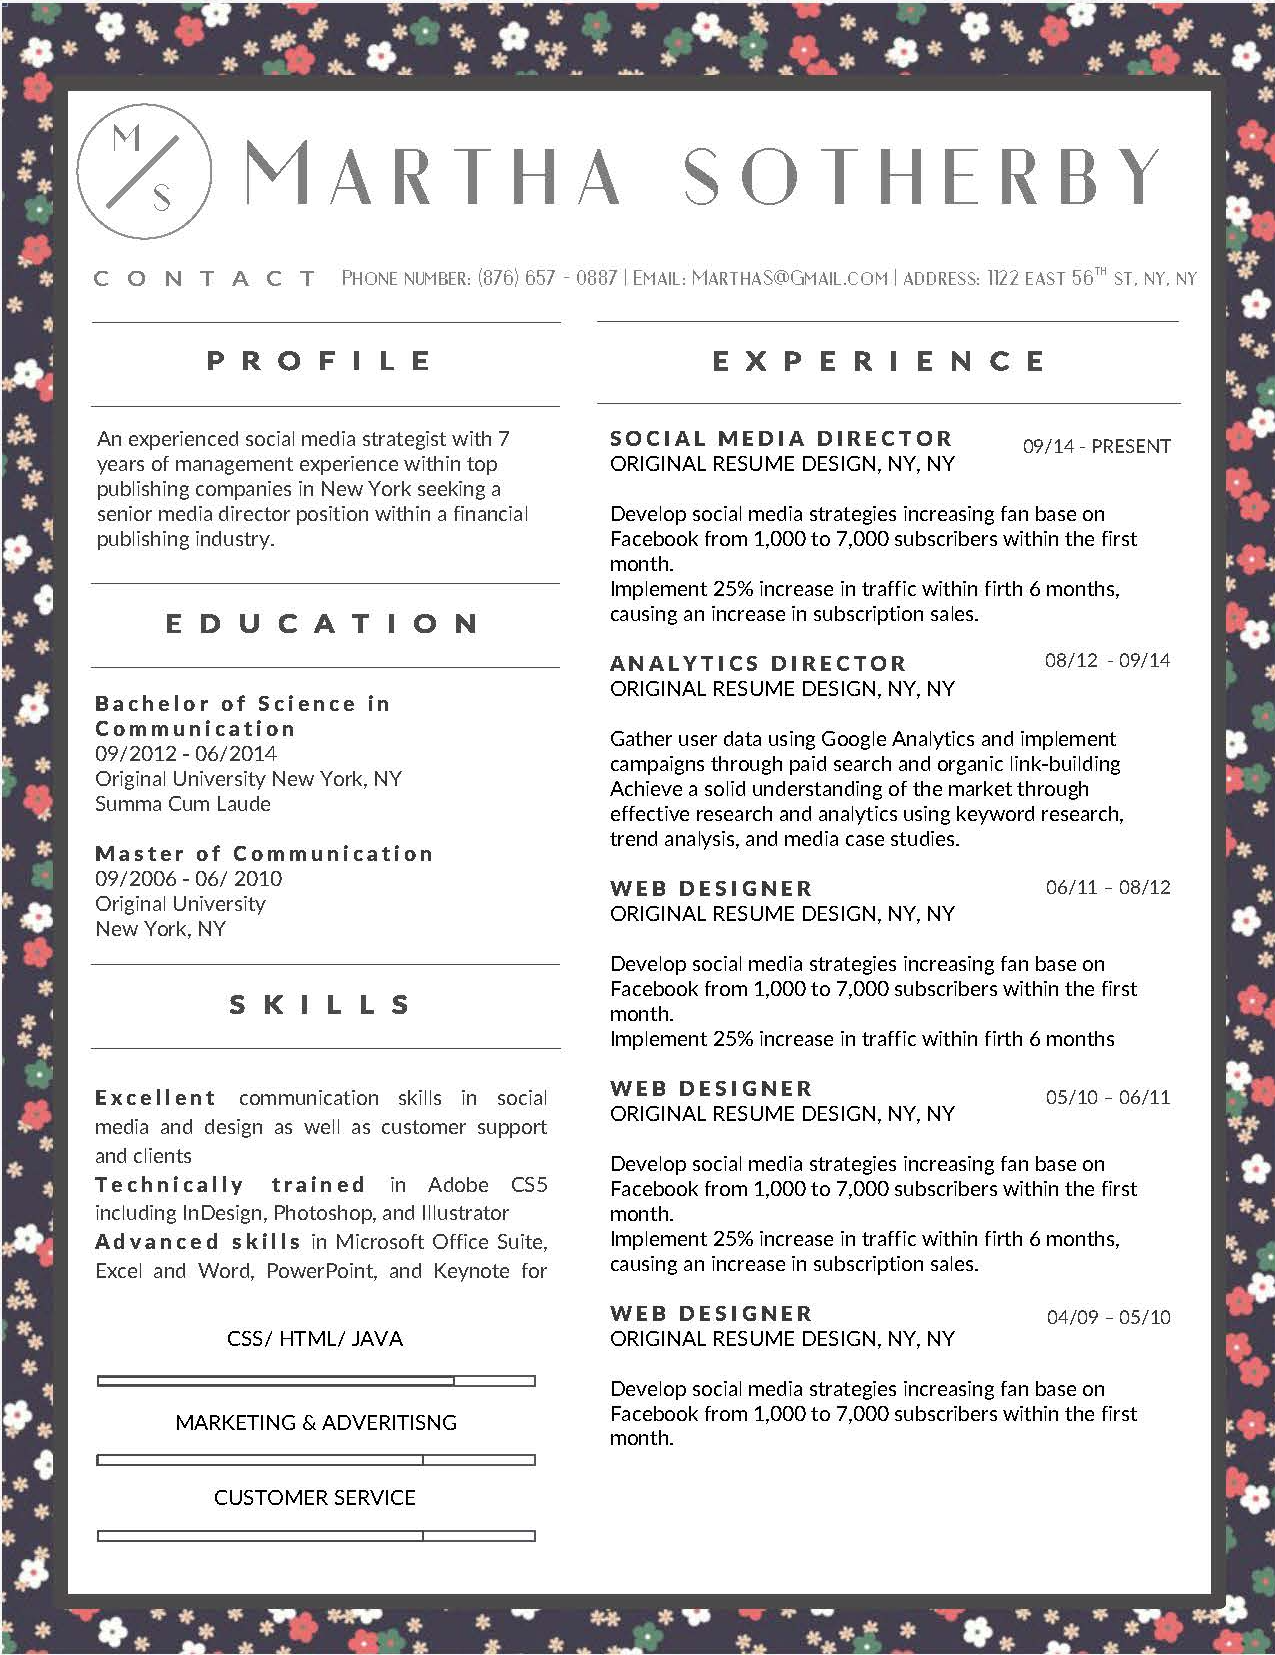 Martha Sotherby - Downloadable Resume Template and Cover Letter Template for Microsoft Word and Apple Pages